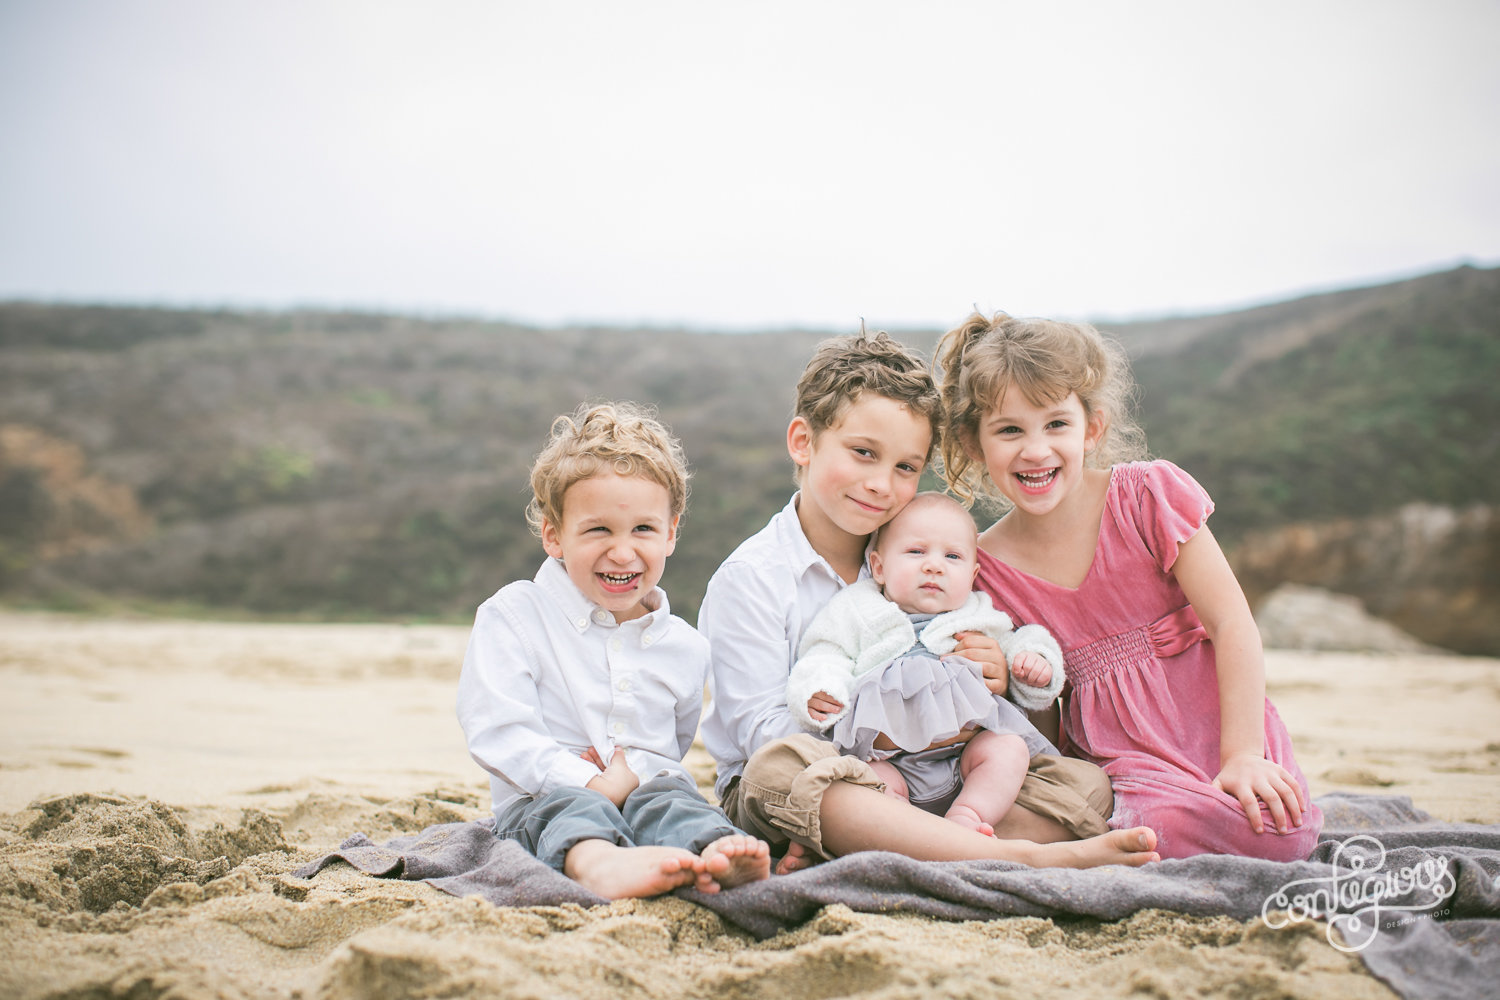 Corkins Family Session by Contagious Design + Photo 216-3